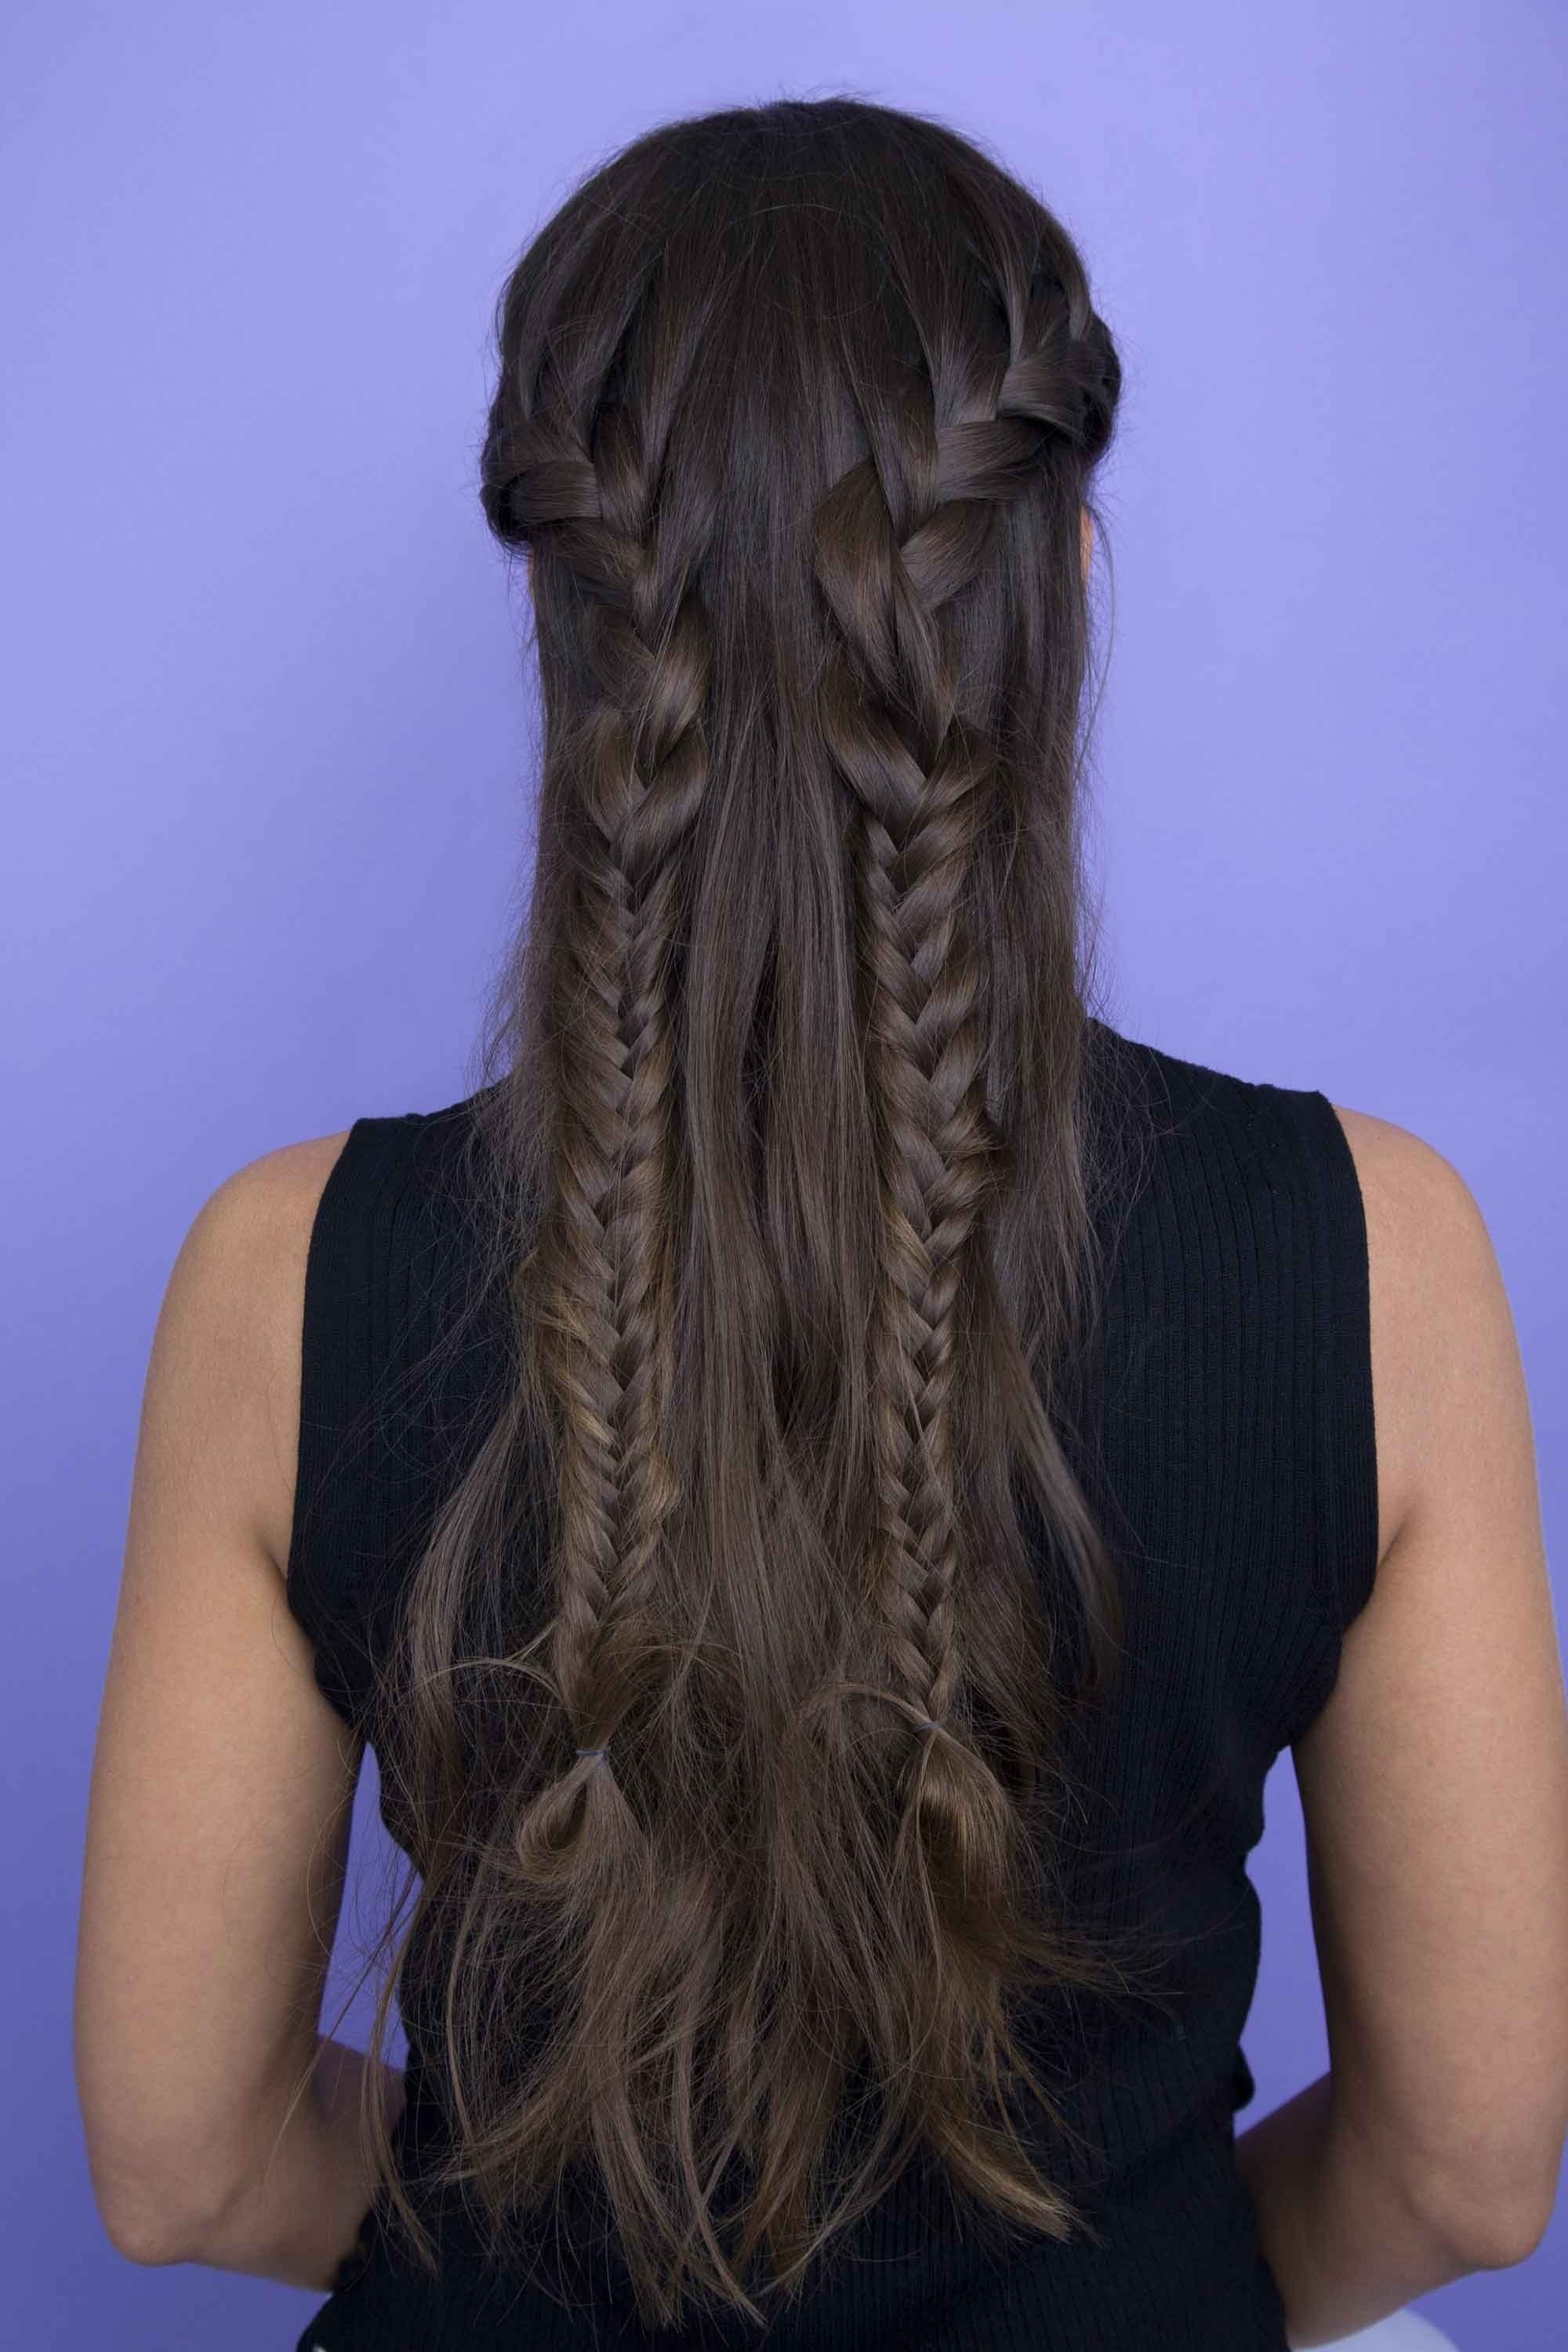 Half Braided Hairstyles: 44 Pretty, Super Flattering Looks Throughout Most Popular Reverse French Braids Ponytail Hairstyles With Chocolate Coils (View 7 of 20)